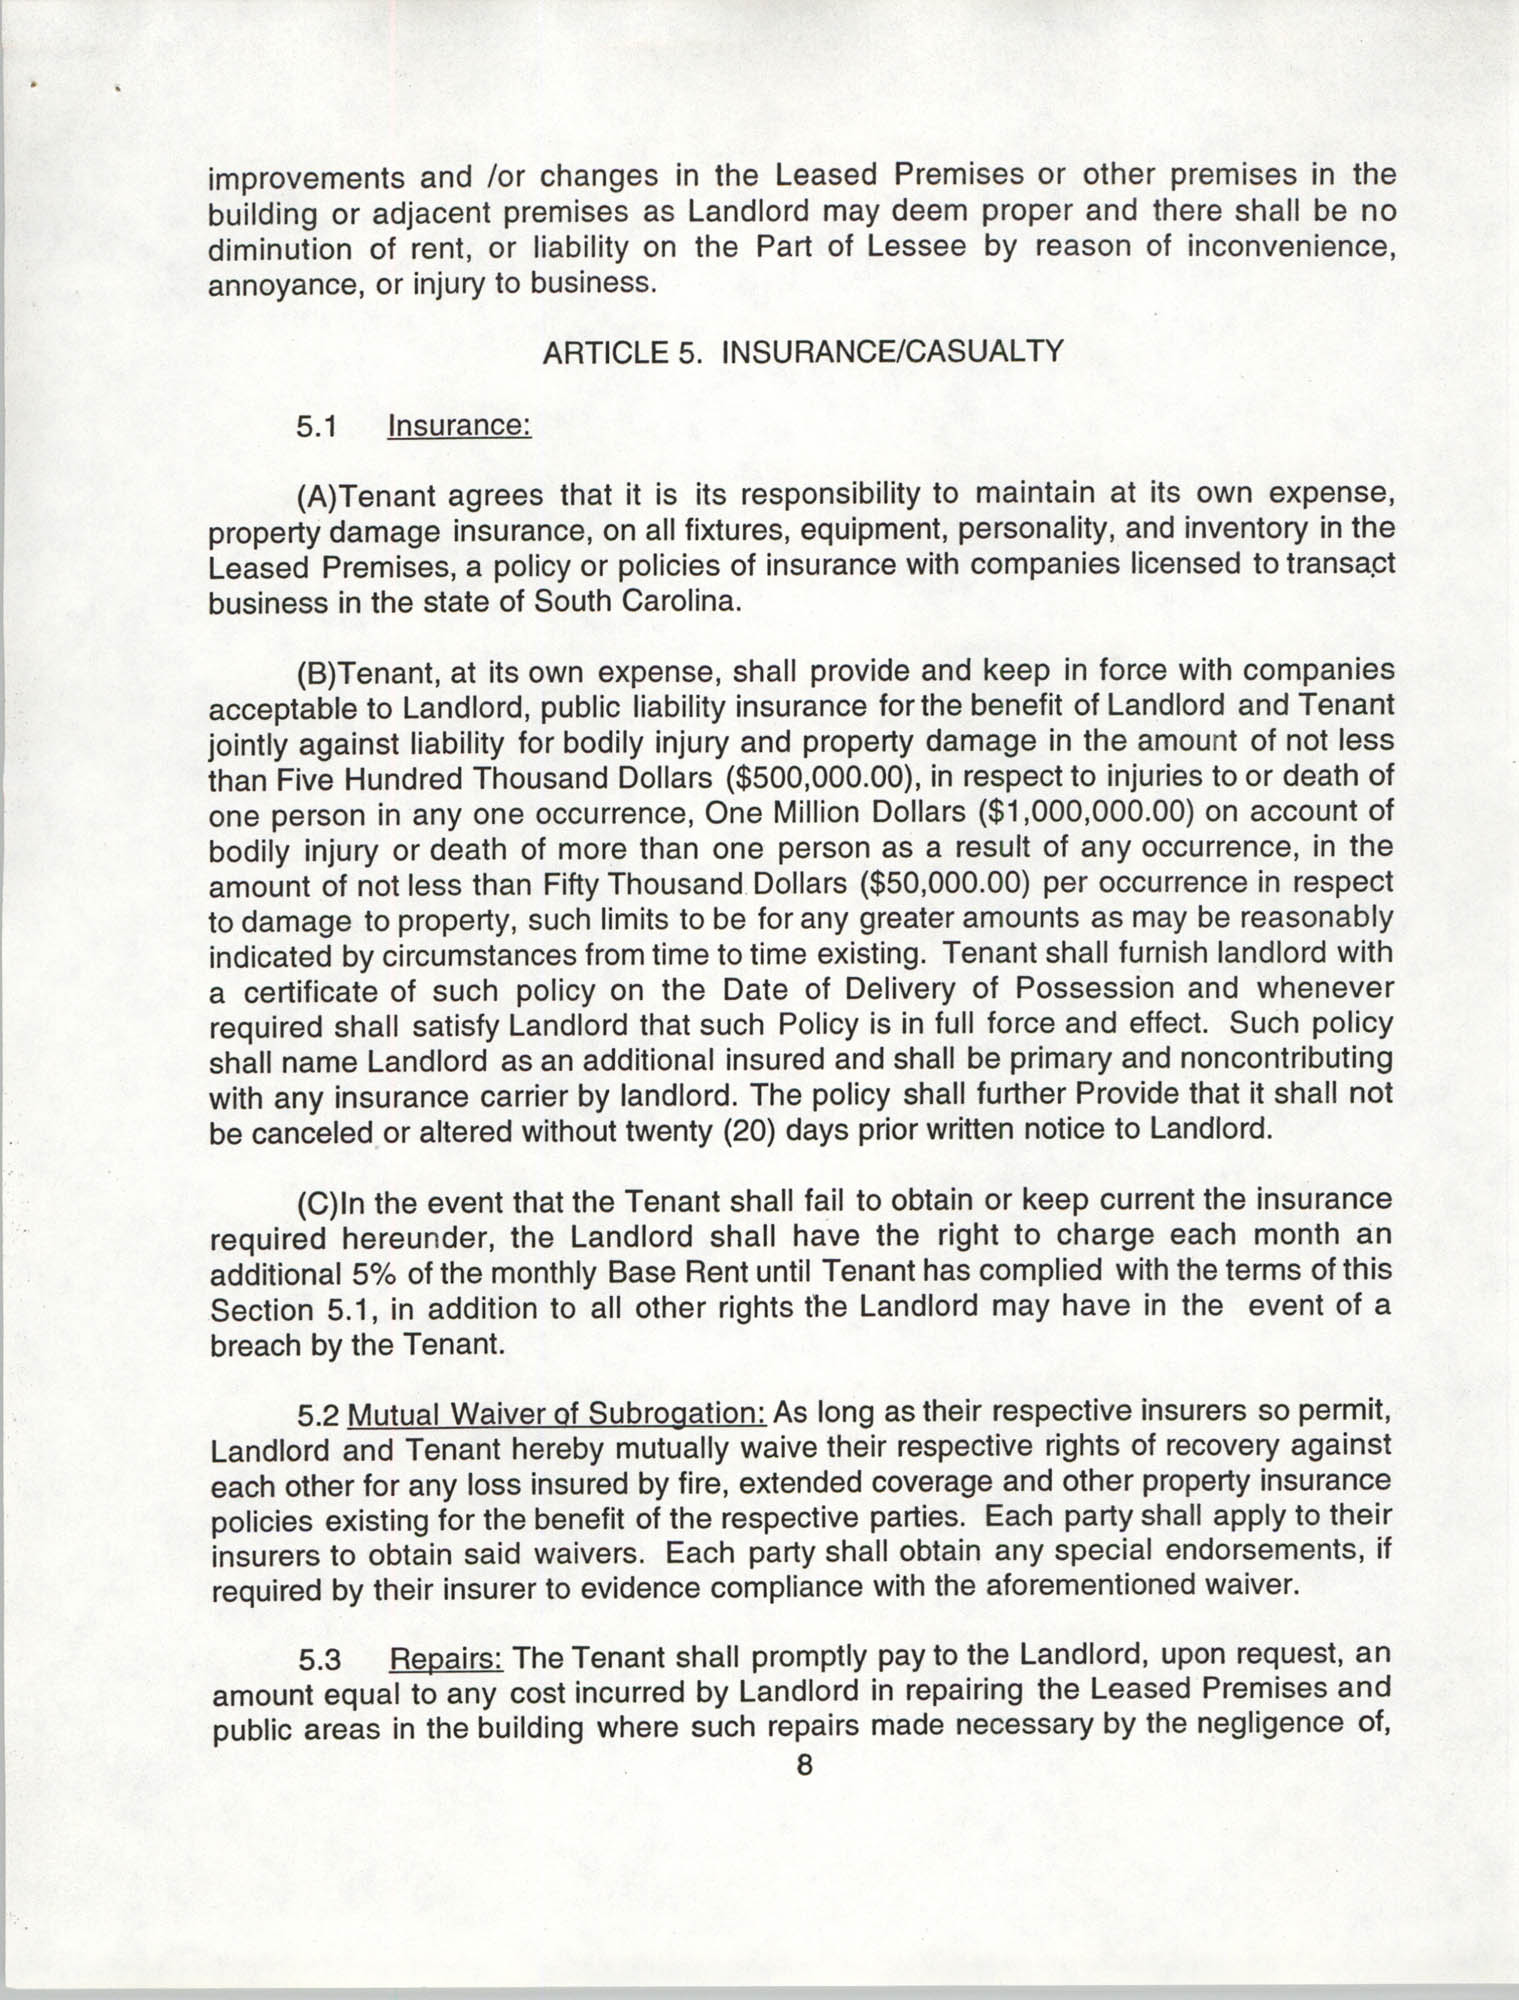 Charleston Branch of the NAACP Leasing Agreement, July 1994 to June 1995, Page 8